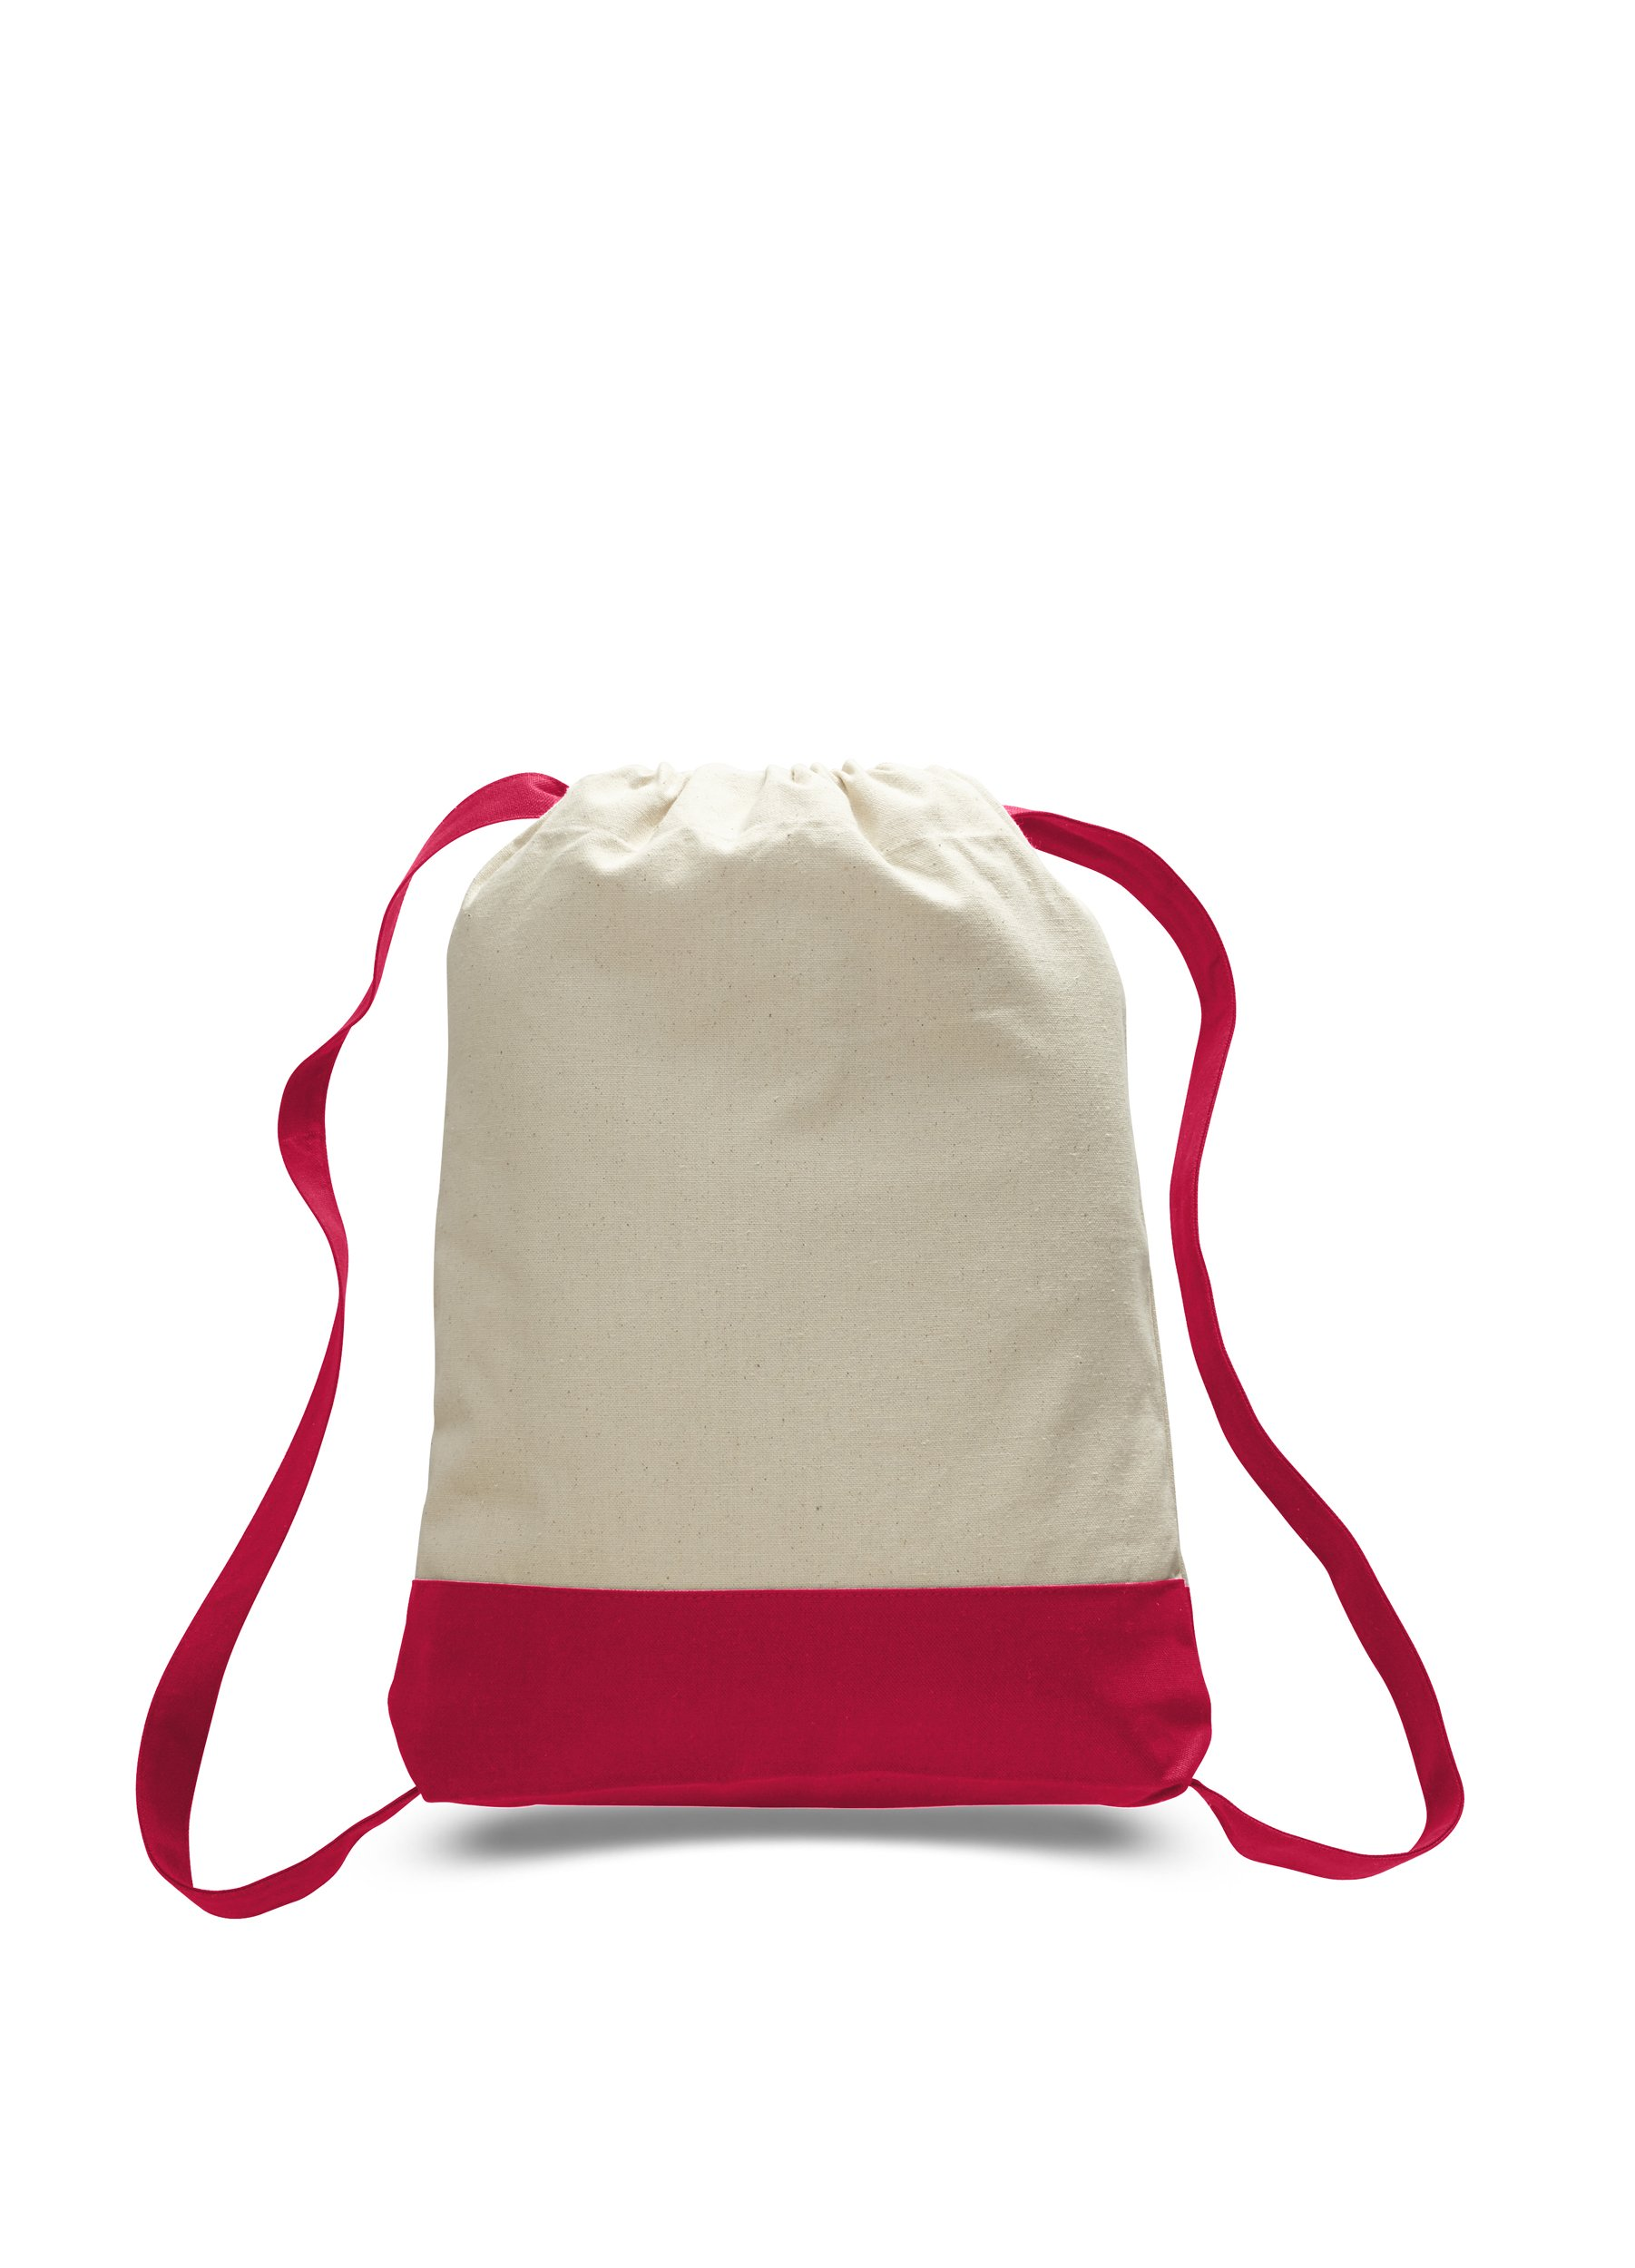 Pack of 12 - Durable Canvas Backpack Bags Two Tone Canvas Sport Promotional Backpacks Bulk - Arts and Crafts Backpacks Sack packs with Adjustable Straps Wholesale Drawstring Bags (Red)